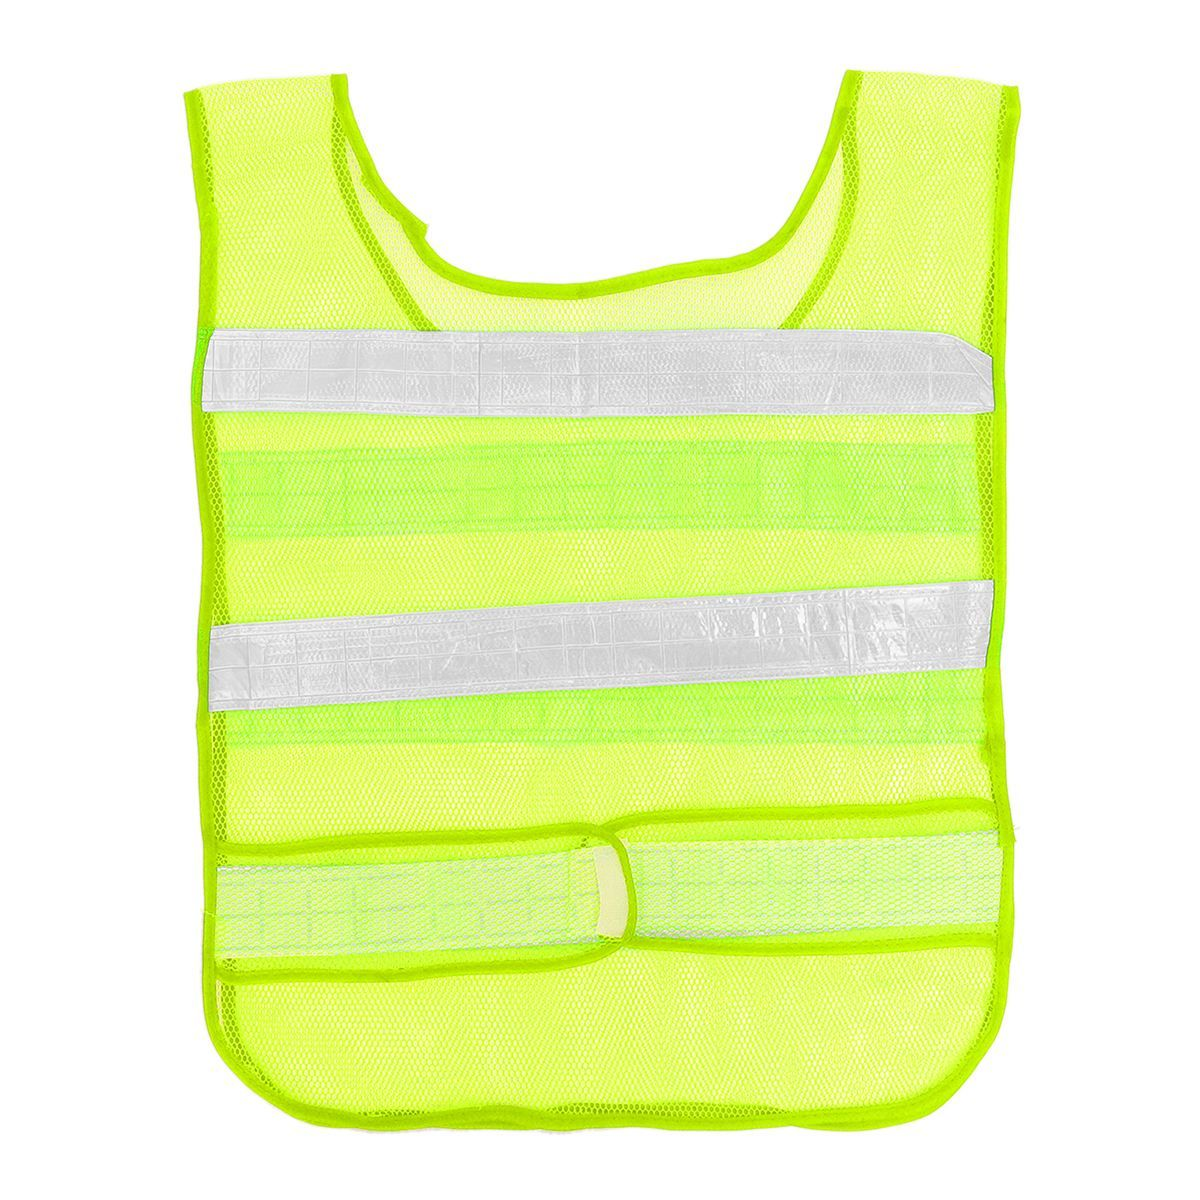 NEW Safurance Reflective Clothing Safety Vests Environmental Sanitation Coat Workplace Safety